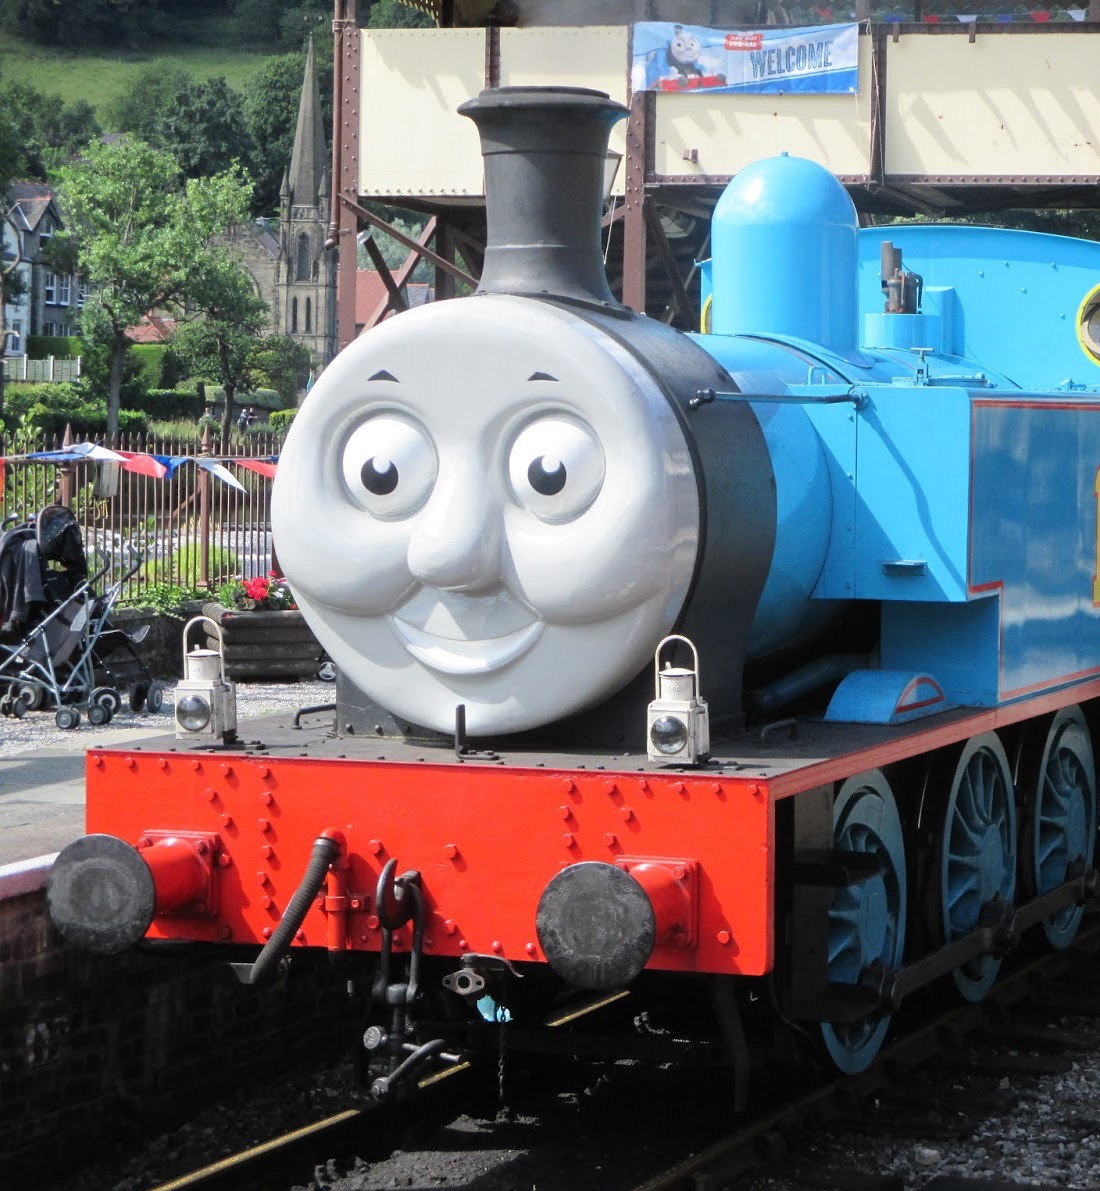 Thomas at Llangollen